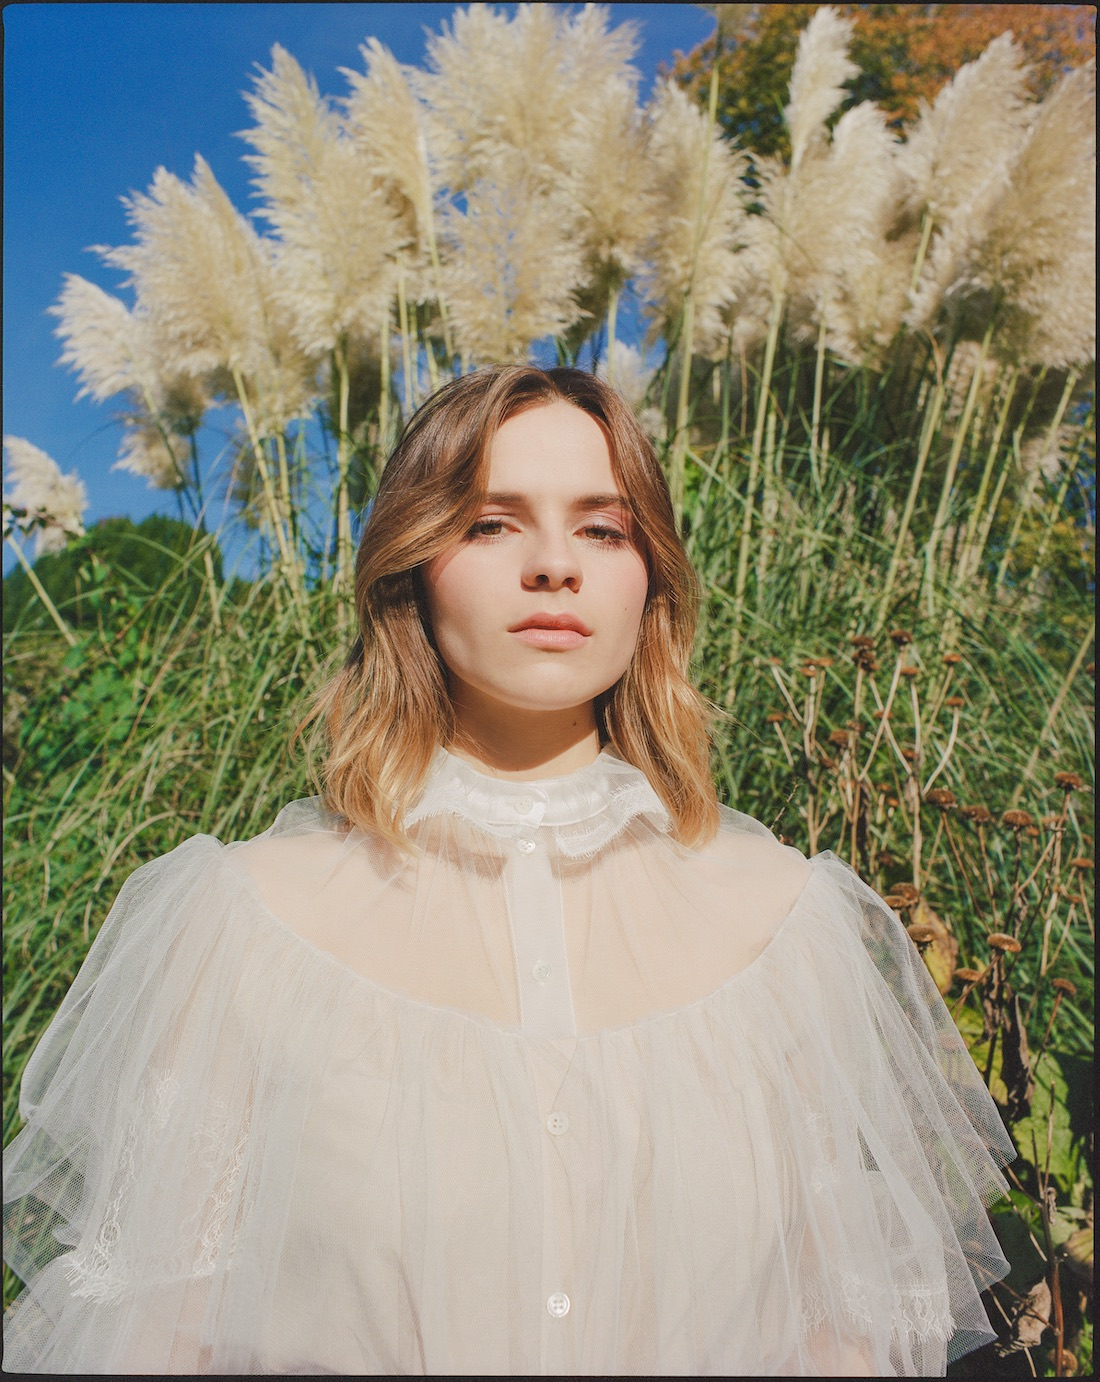 Gabrielle Aplin © Louie Banks